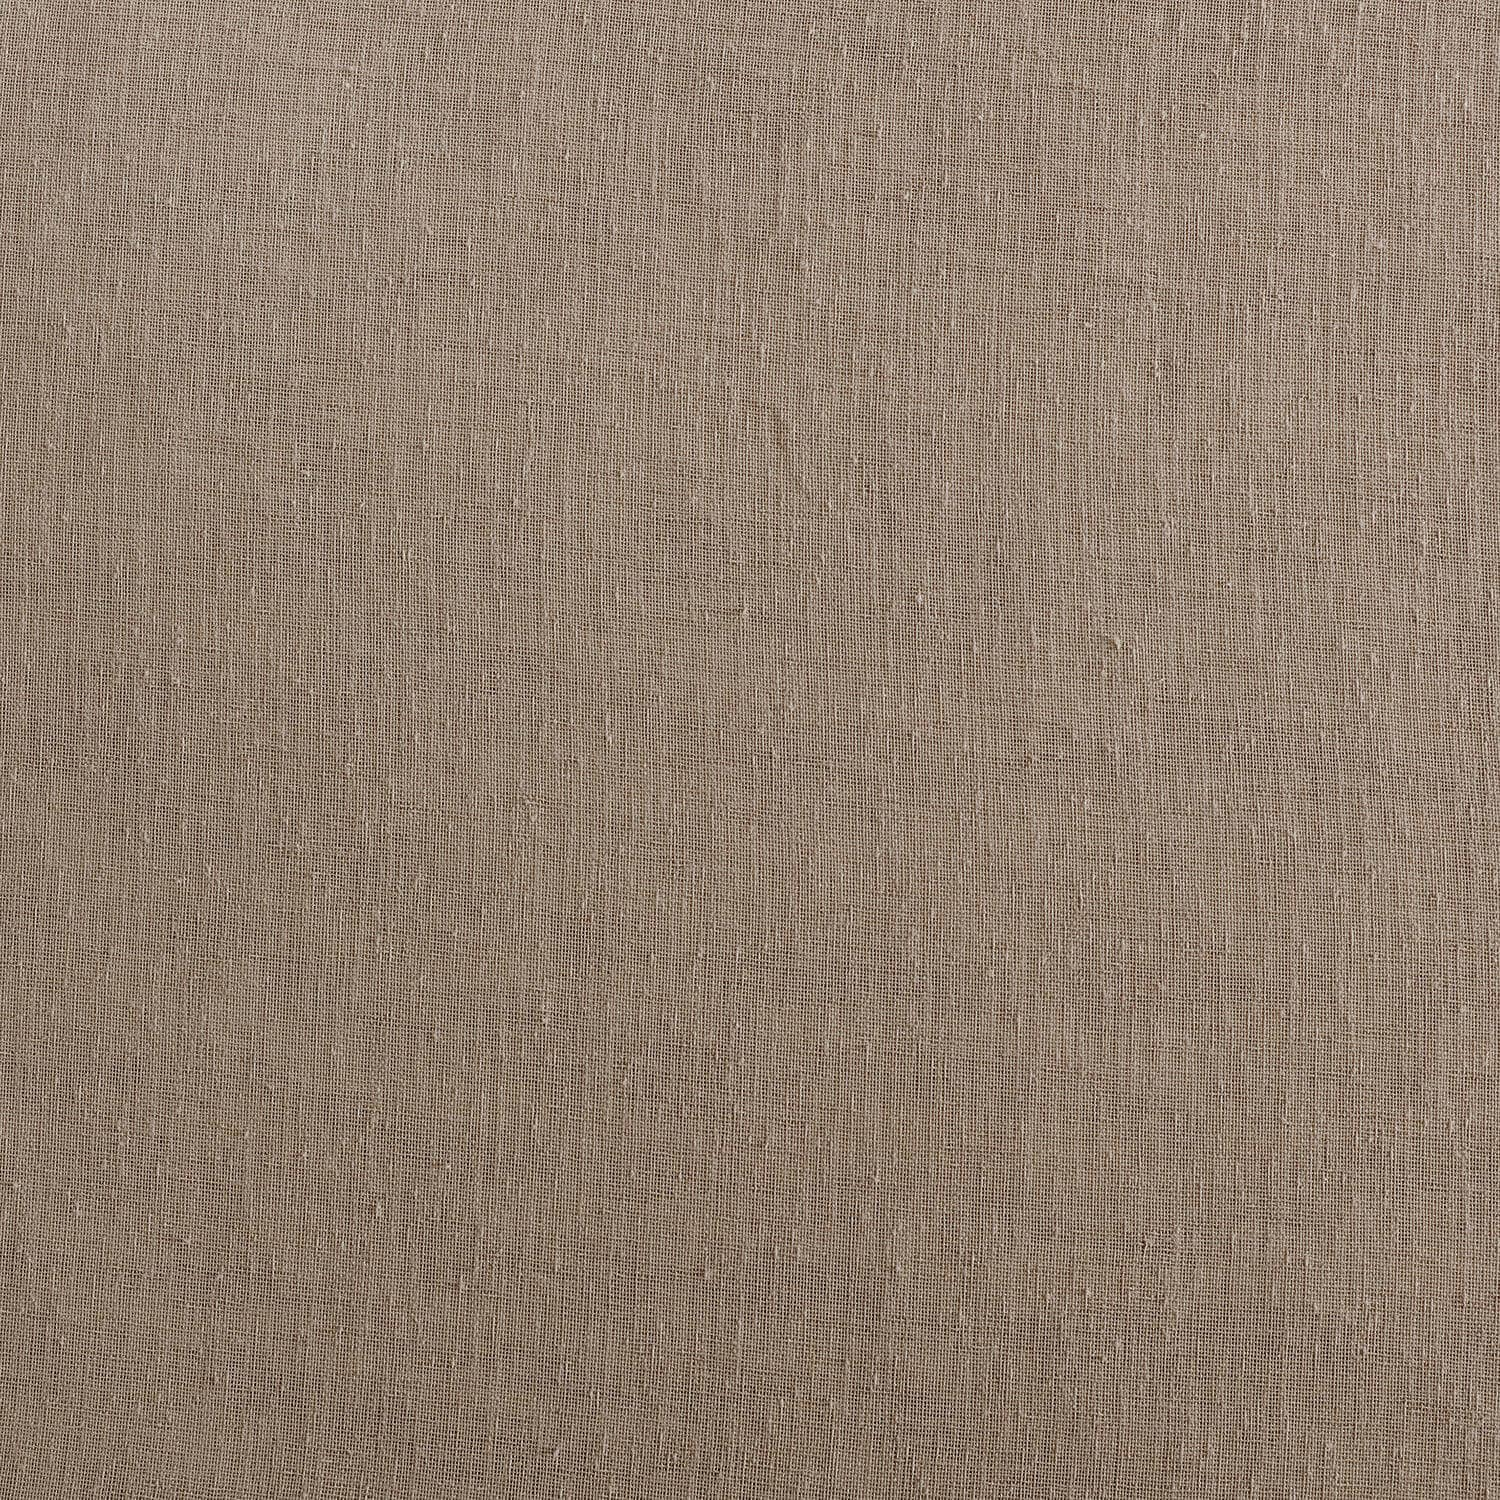 Nude Mauve Solid Faux Linen Sheer Swatch